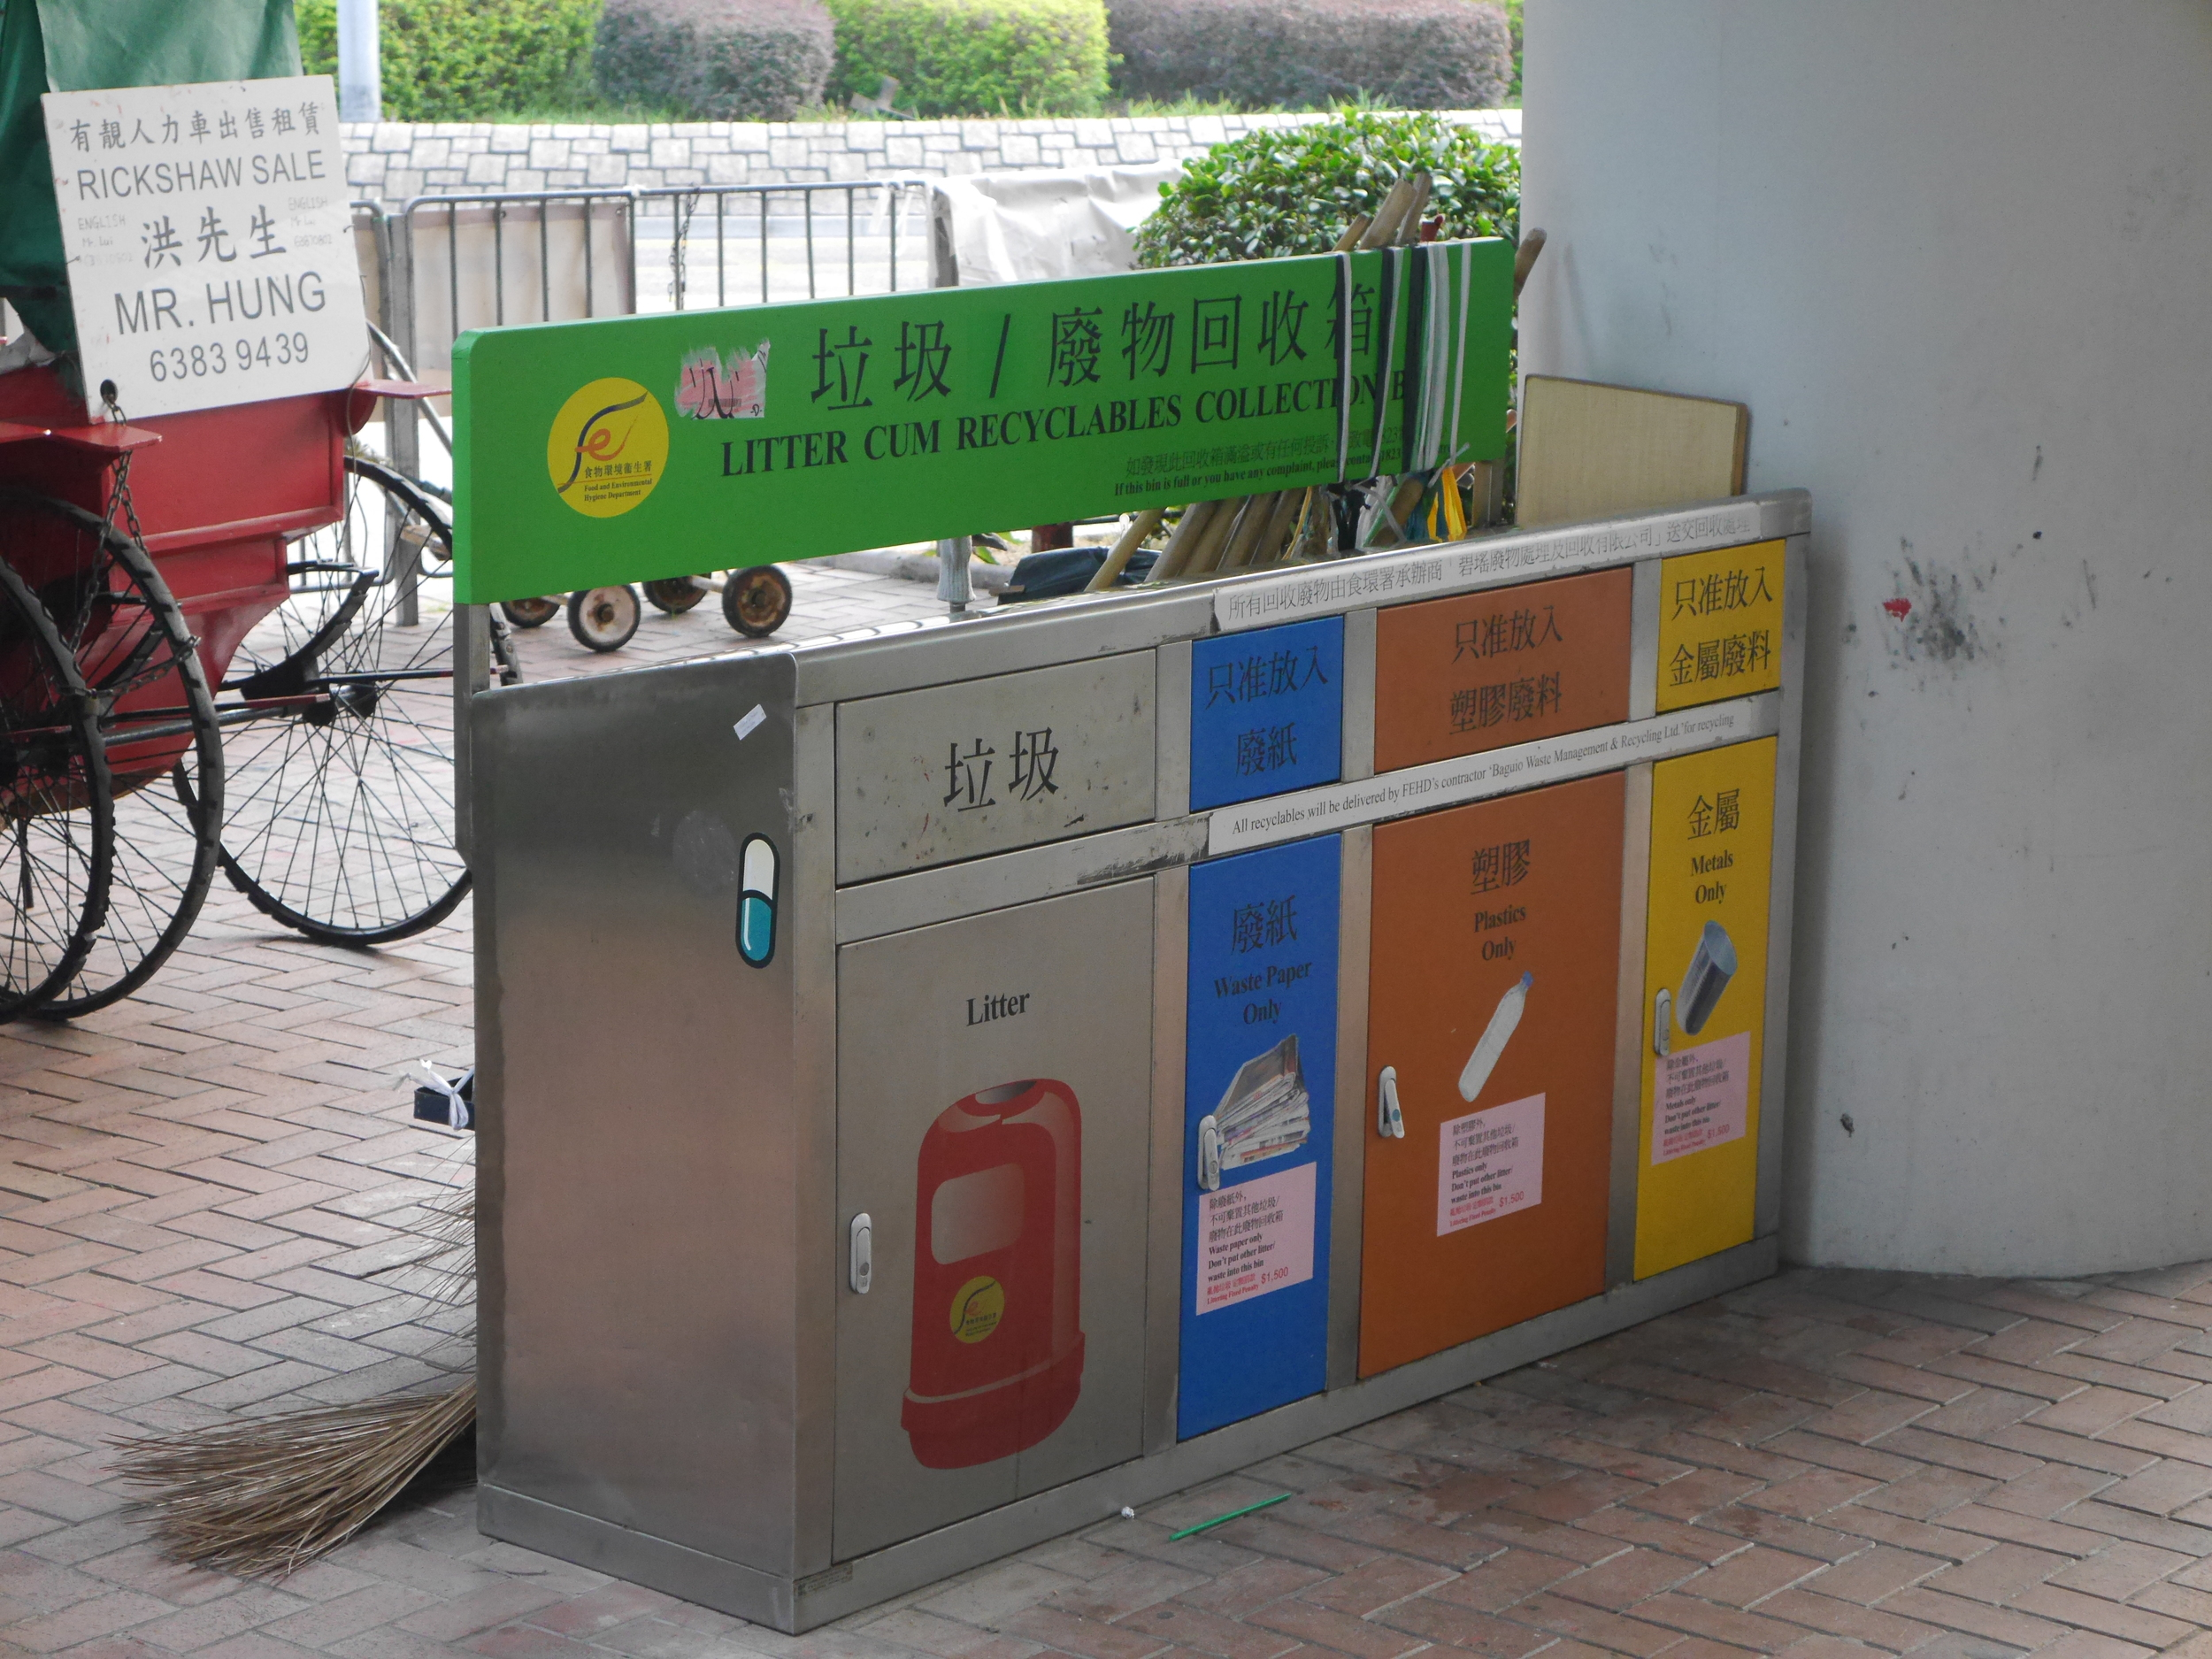 Litter cum recyclables. Apparently Hong Kong actually recycles very, very little. Surprising for such a dense, island-based city/country. Taiwan and Japan are both all about the recycling.